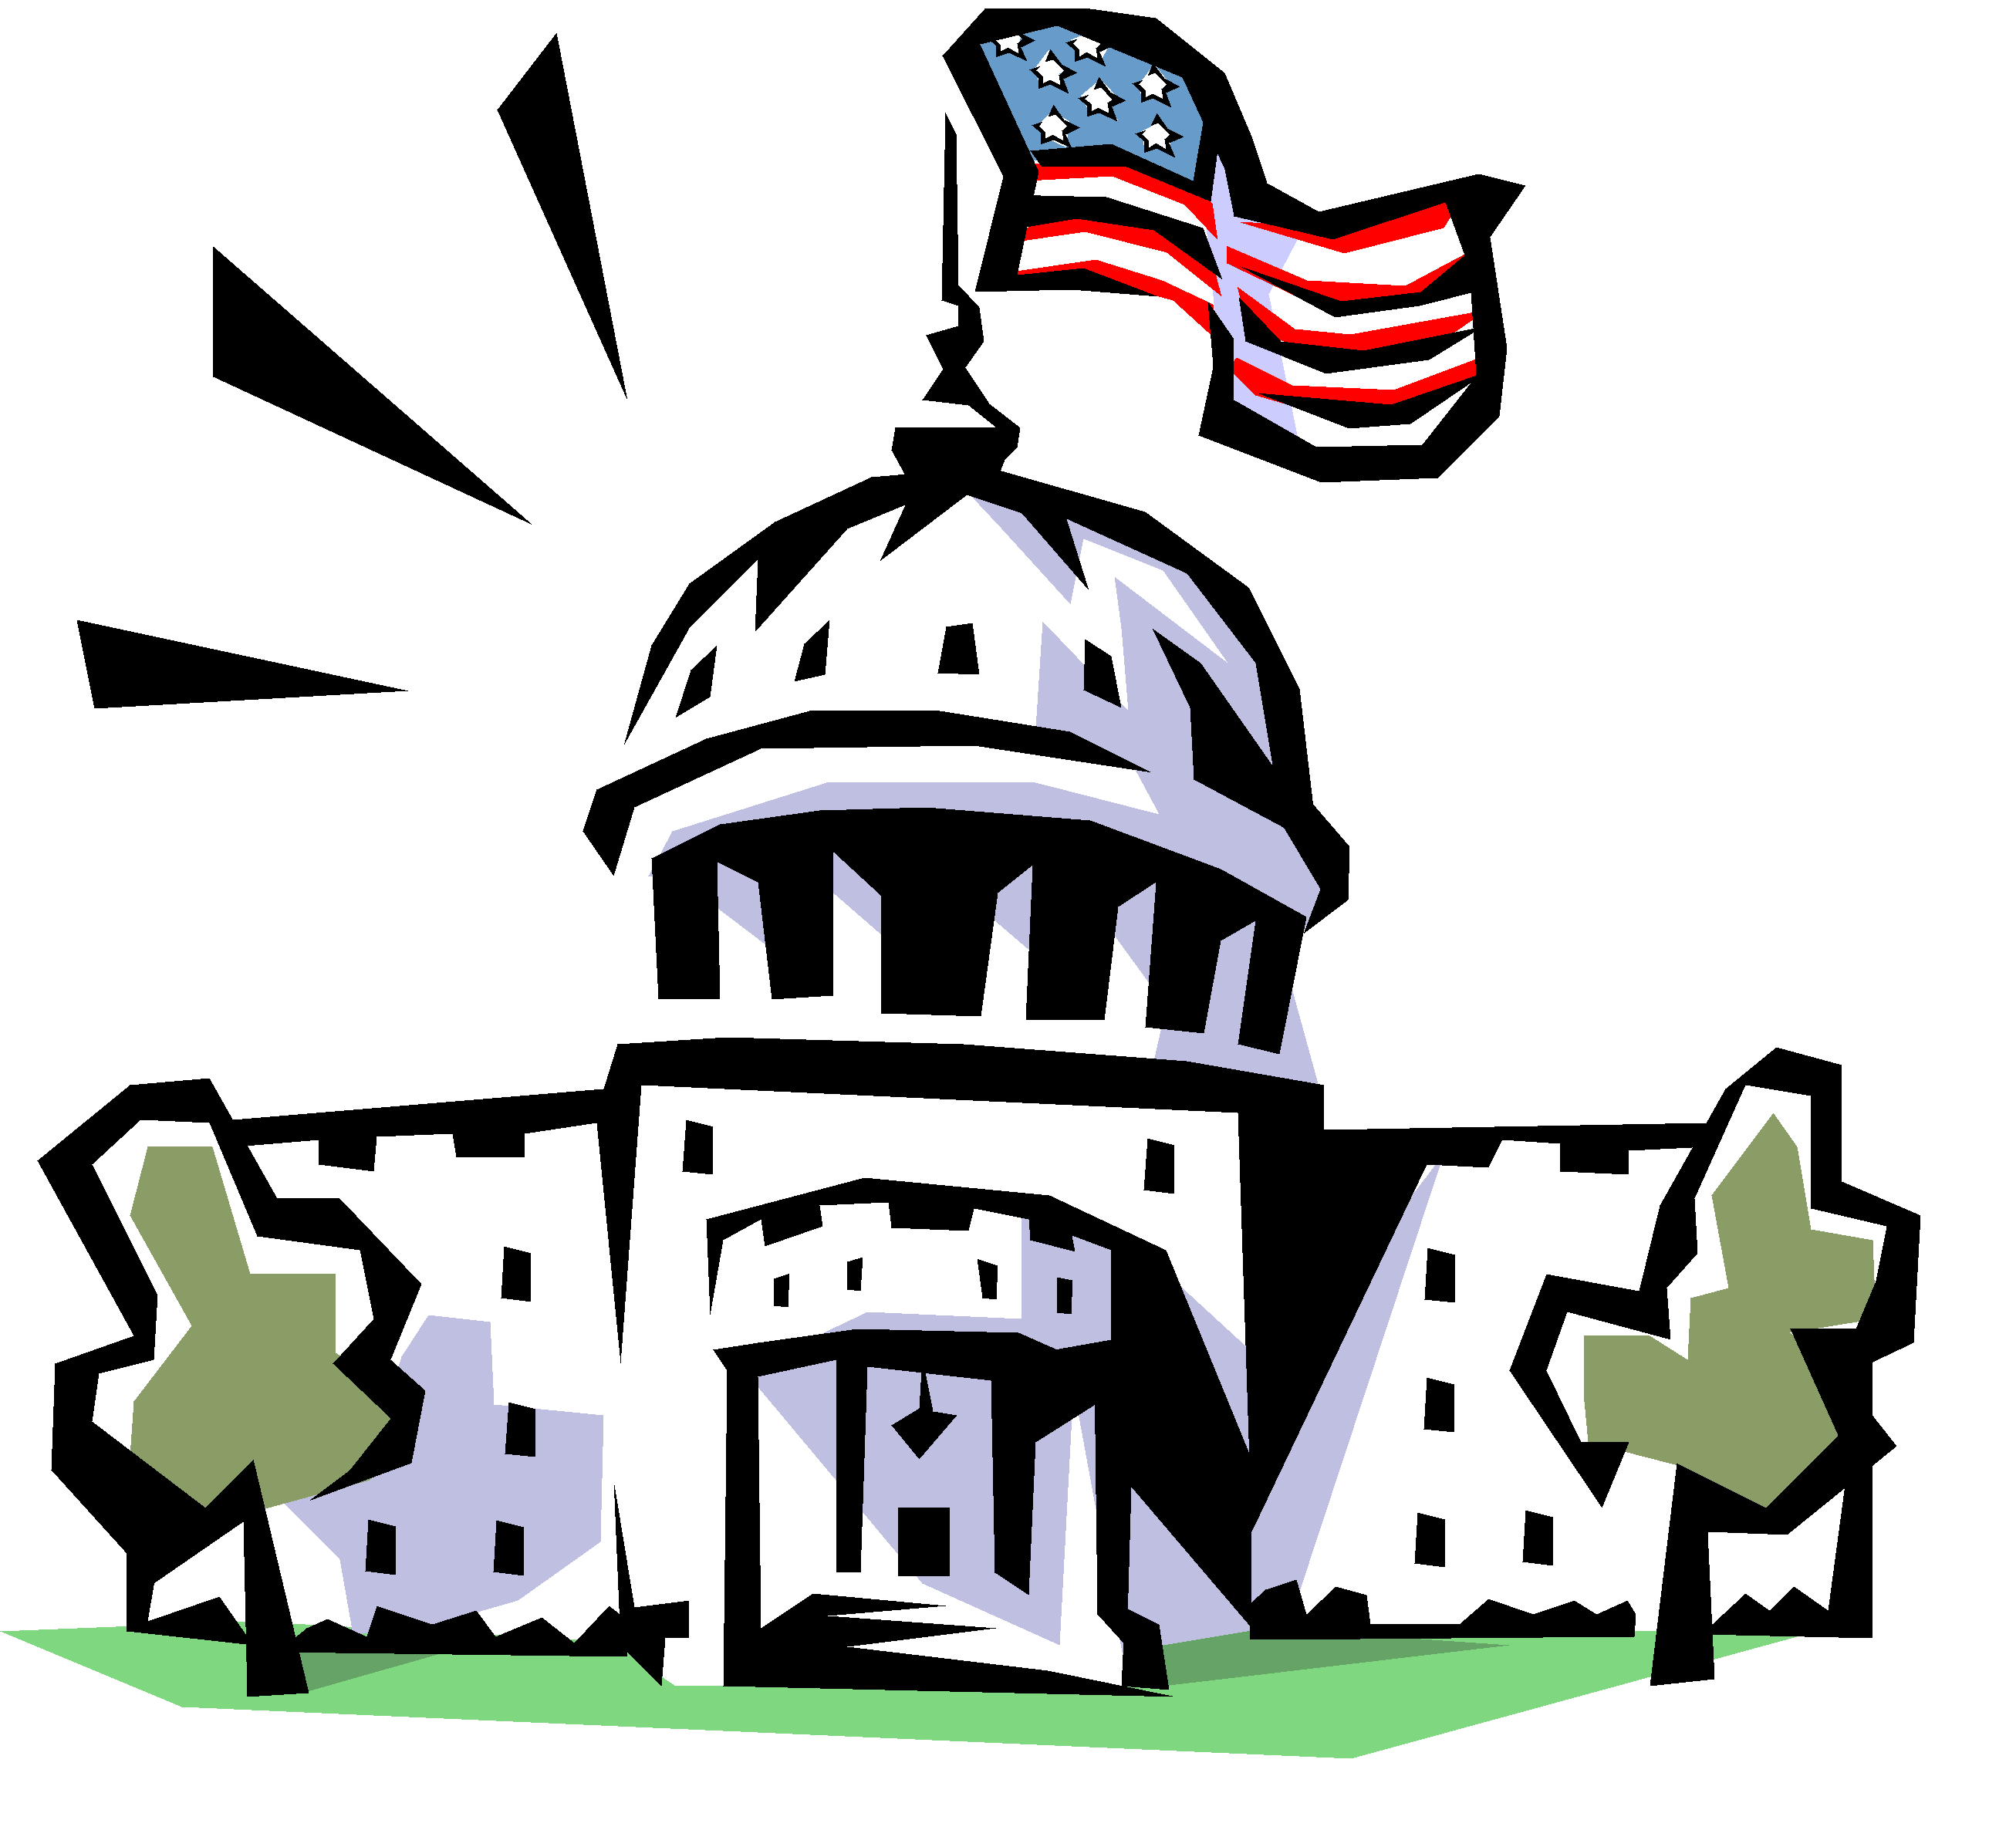 Free federal system cliparts. Politics clipart plus